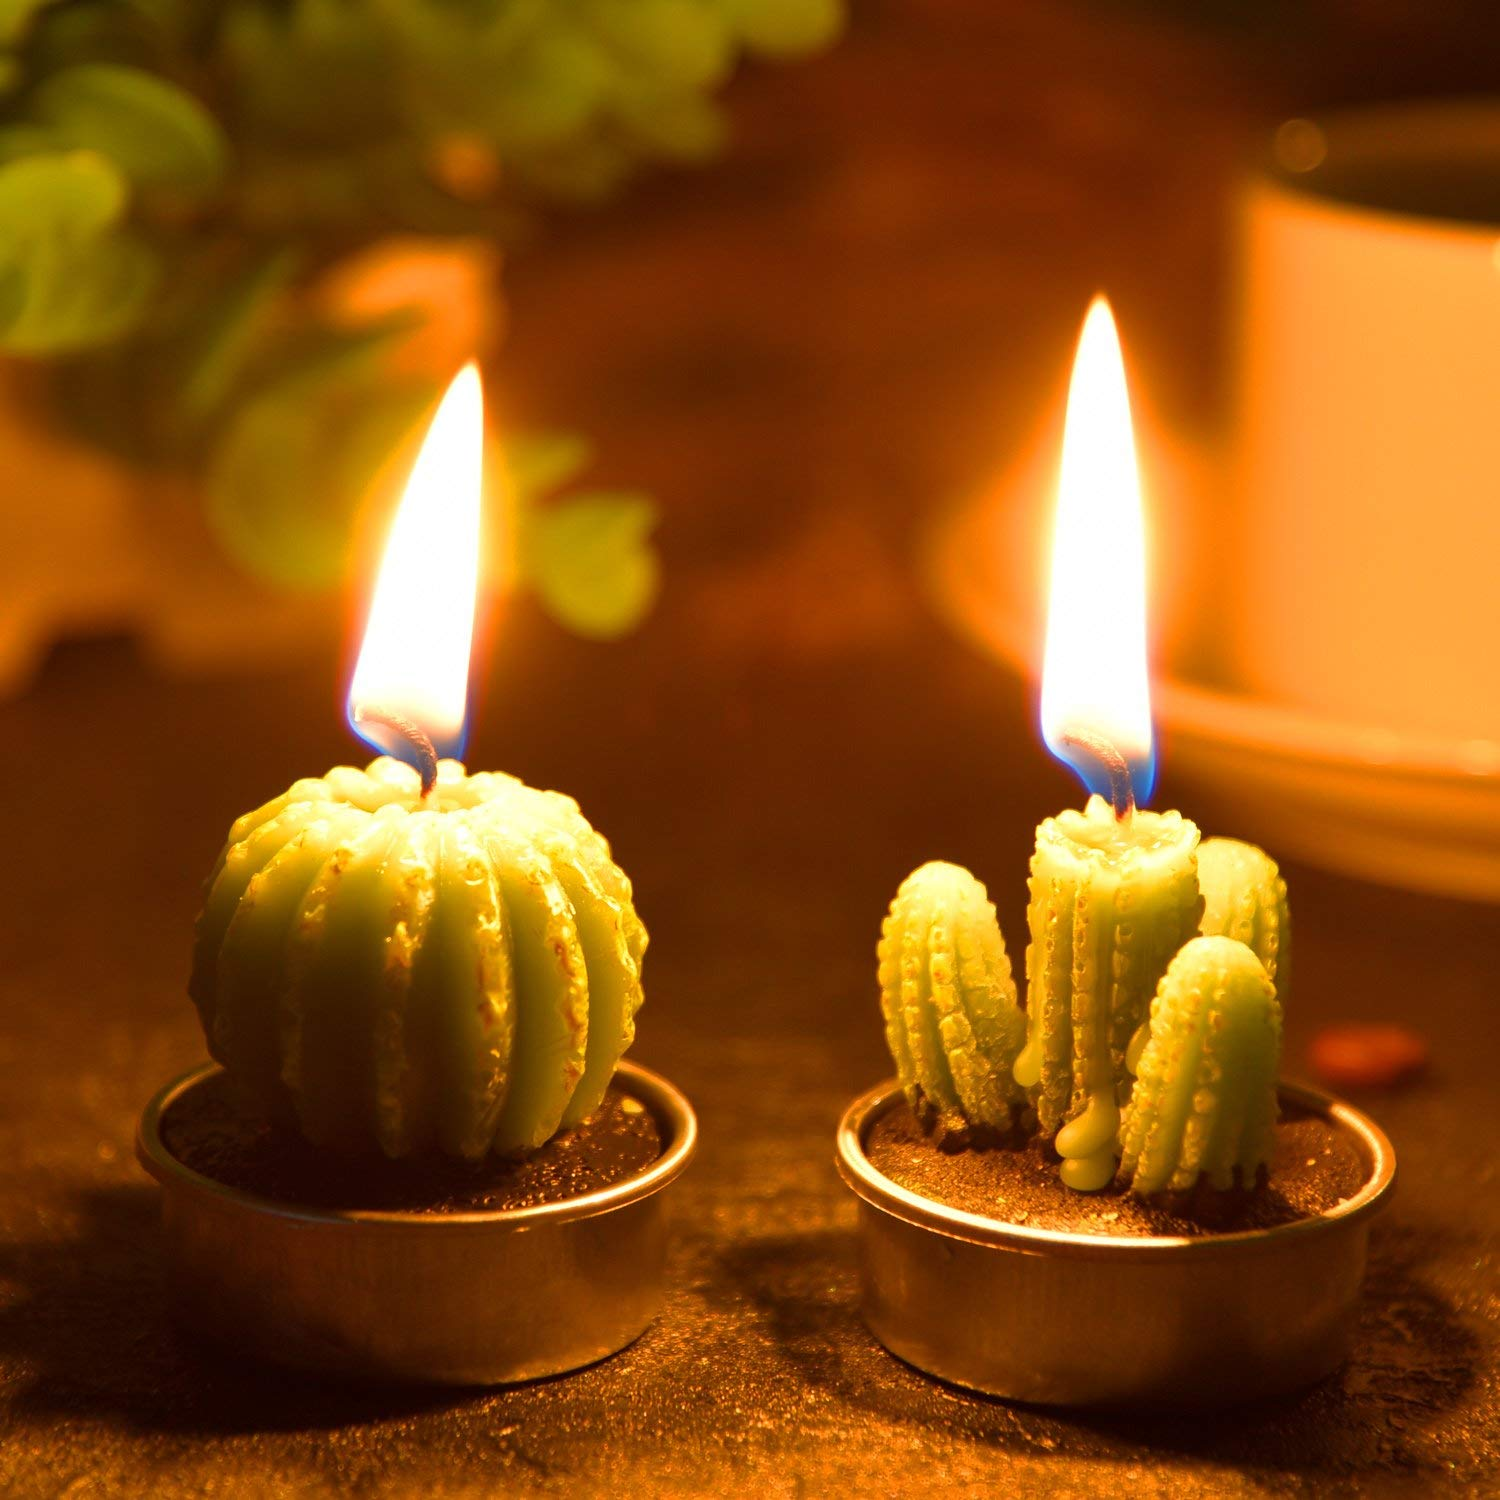 Cactus and Succulent Tealight Candles - oddgifts.com